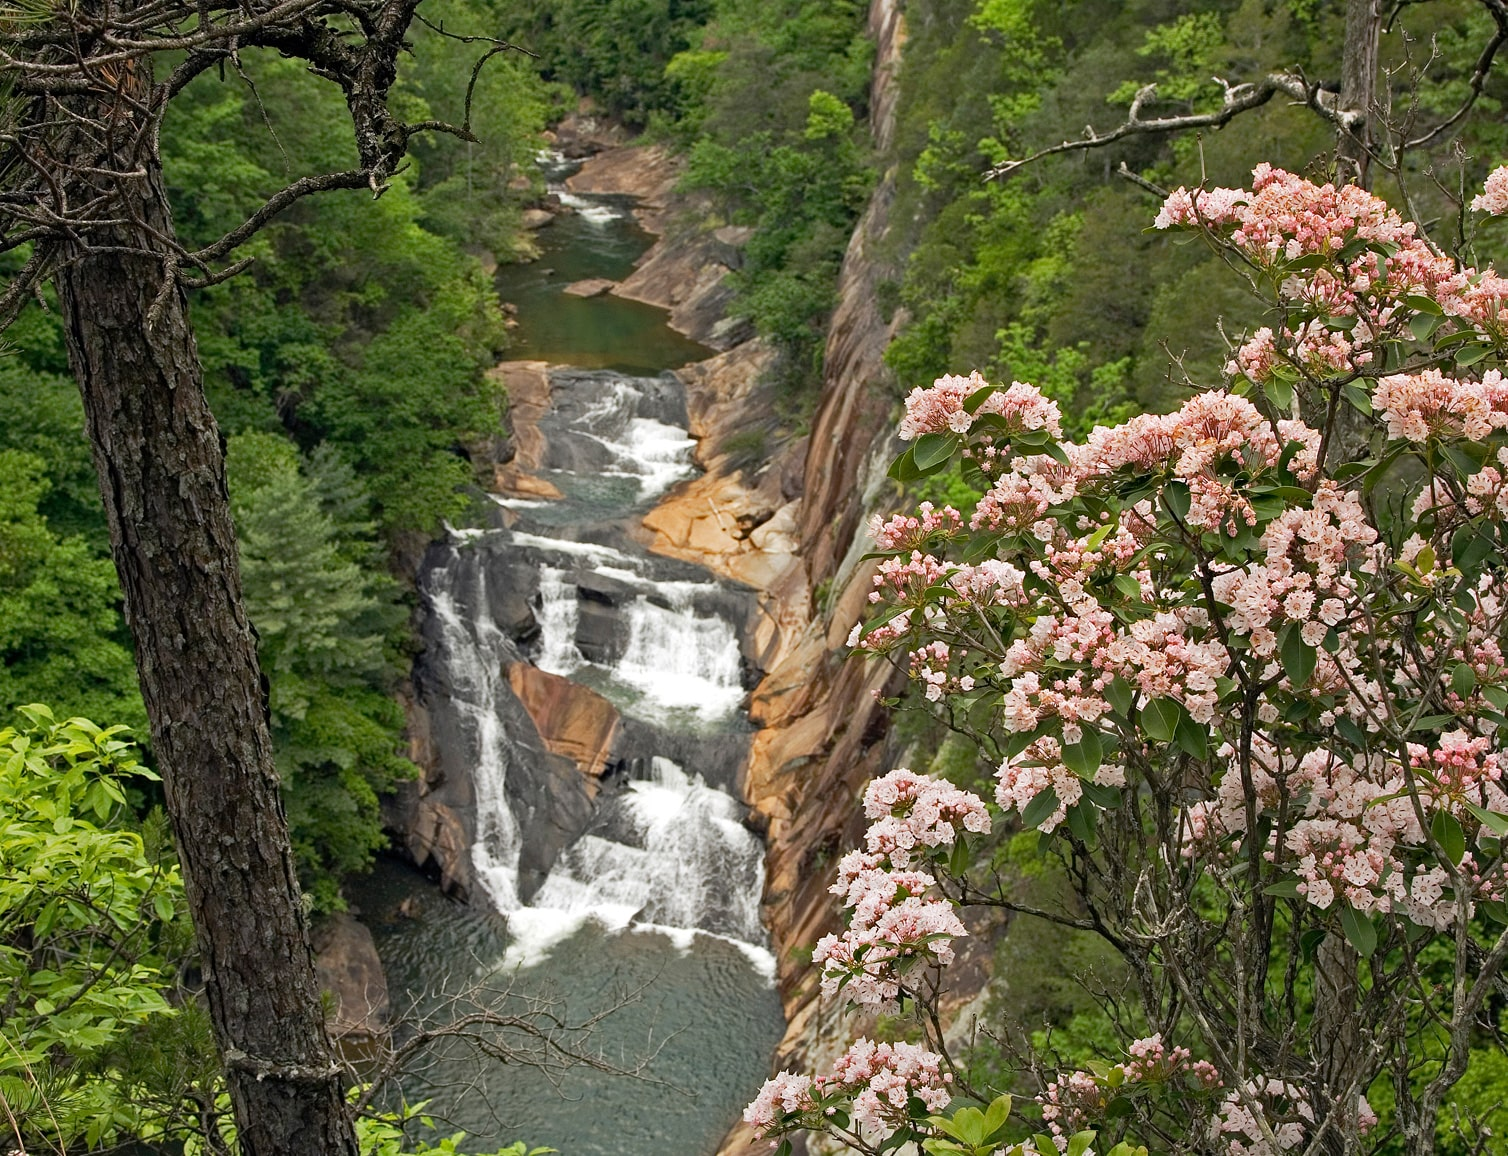 L'Eau d'Or Falls at Tallulah Gorge State Park